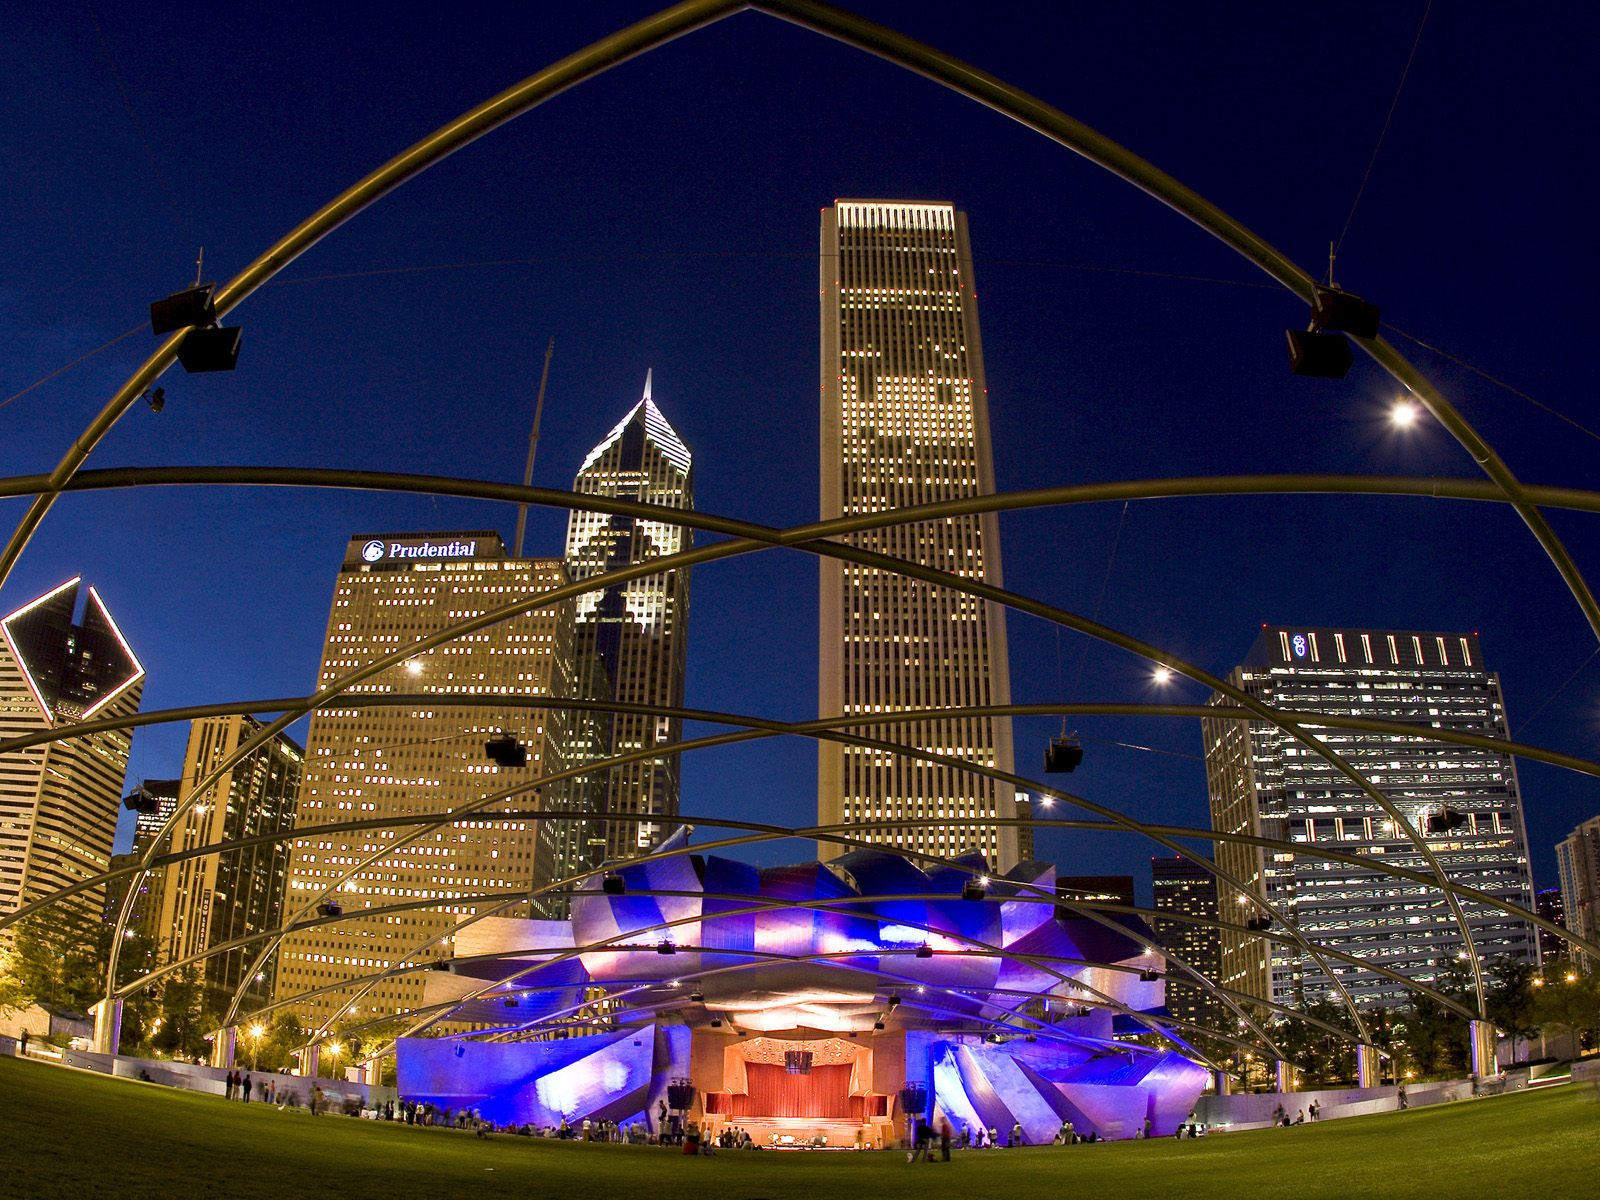 milennium park Millennium park, walker: see 97 reviews, articles, and 24 photos of millennium park on tripadvisor.